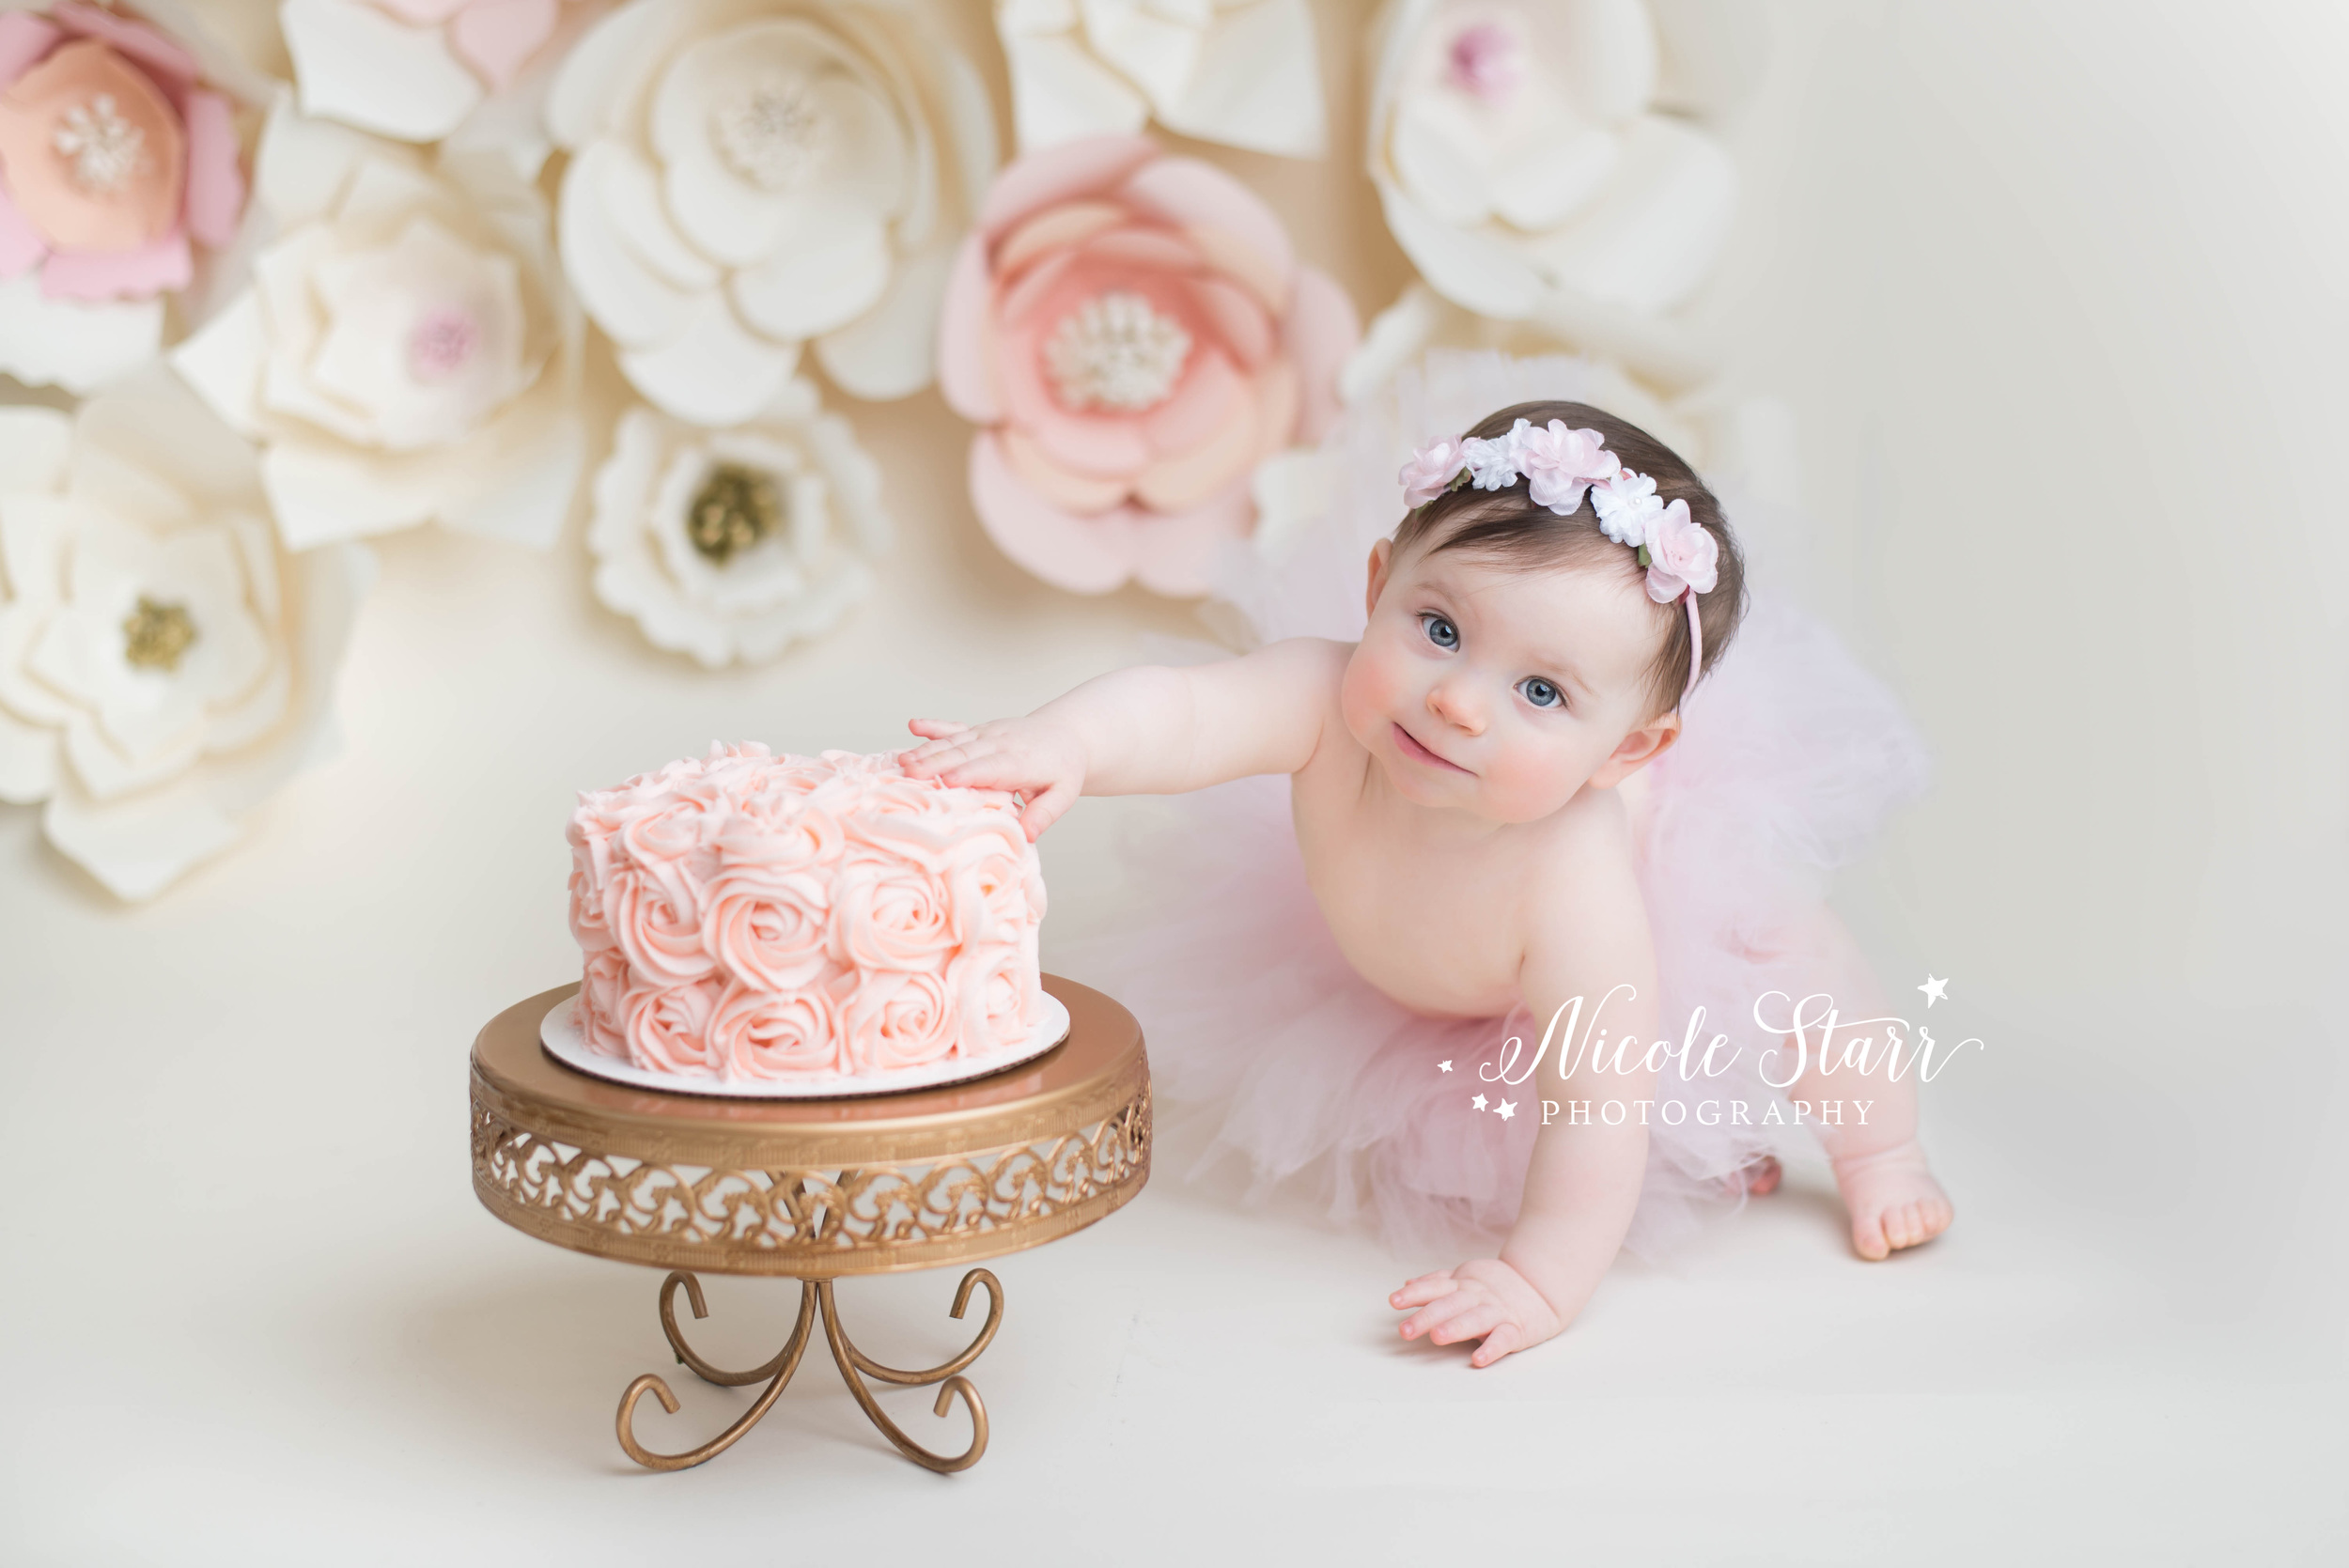 whimsical cake smash photo shoot